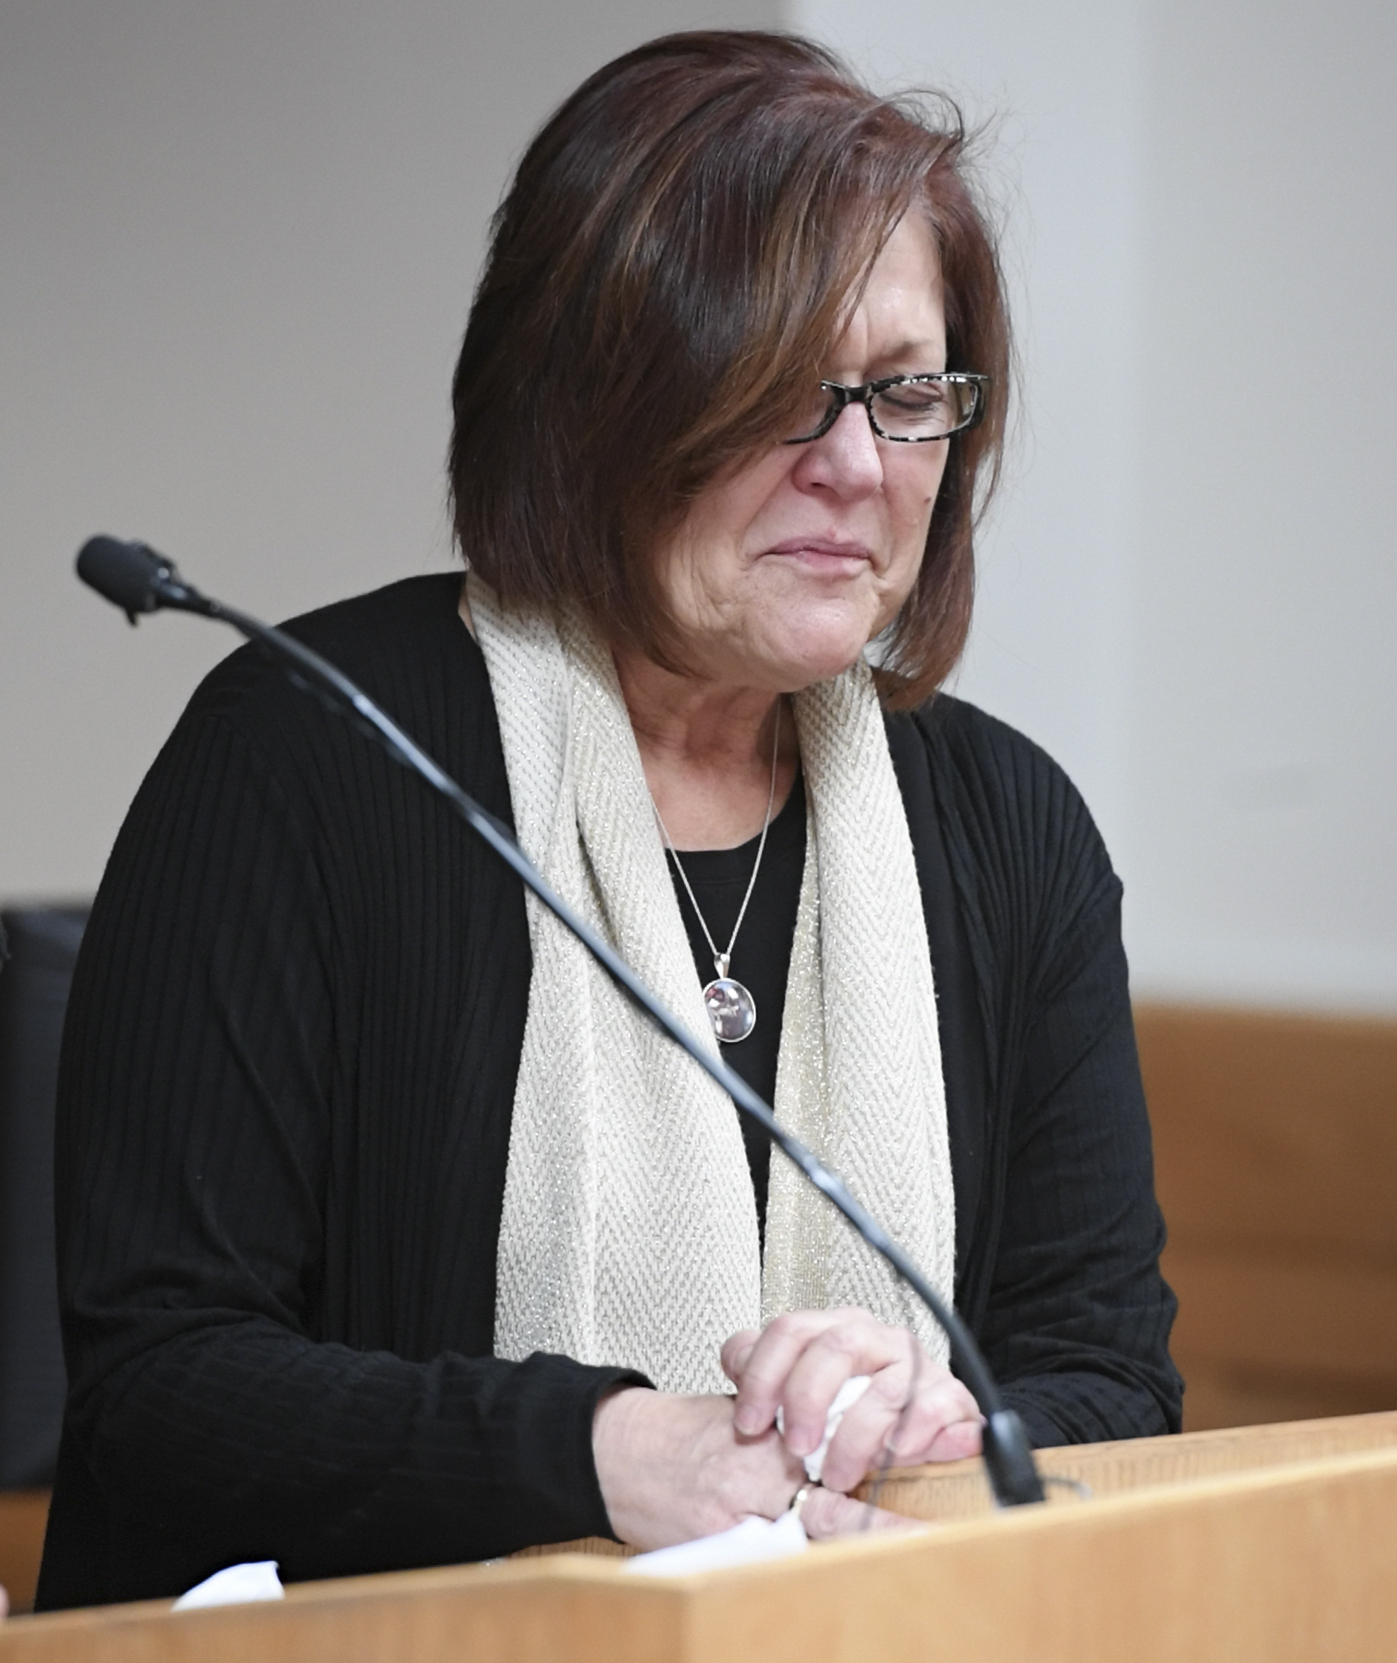 Offbeat: Convicted murderer quiet on why he killed wife